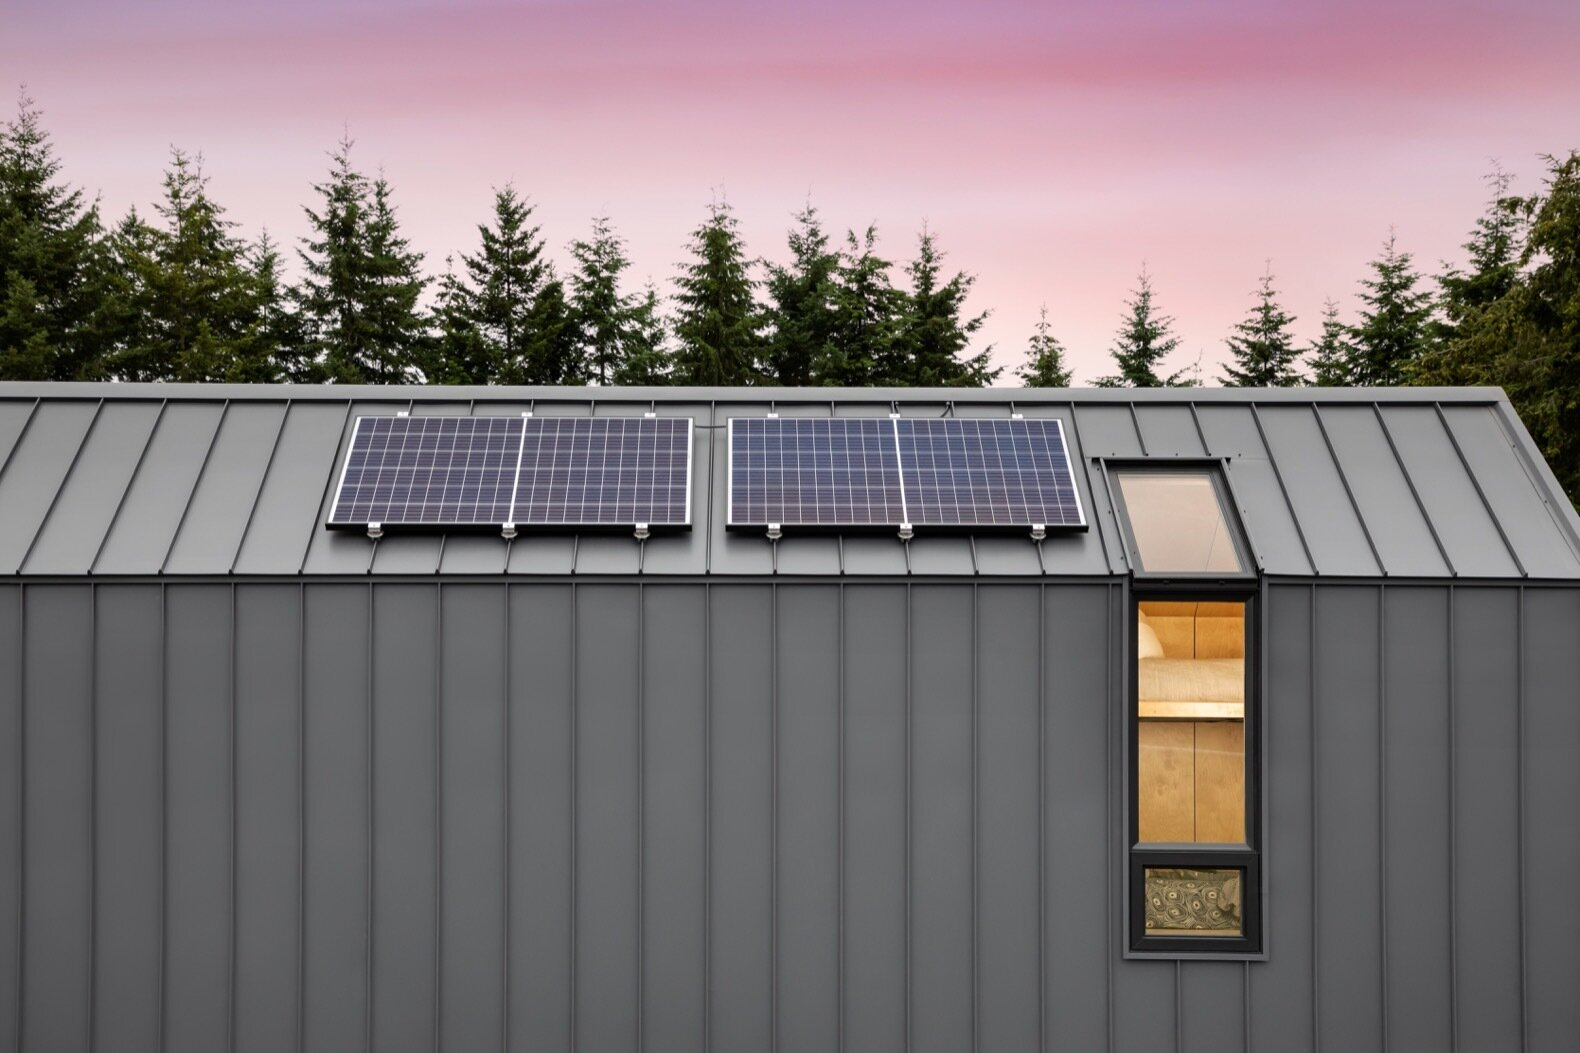 The DW by Modern Shed solar panels